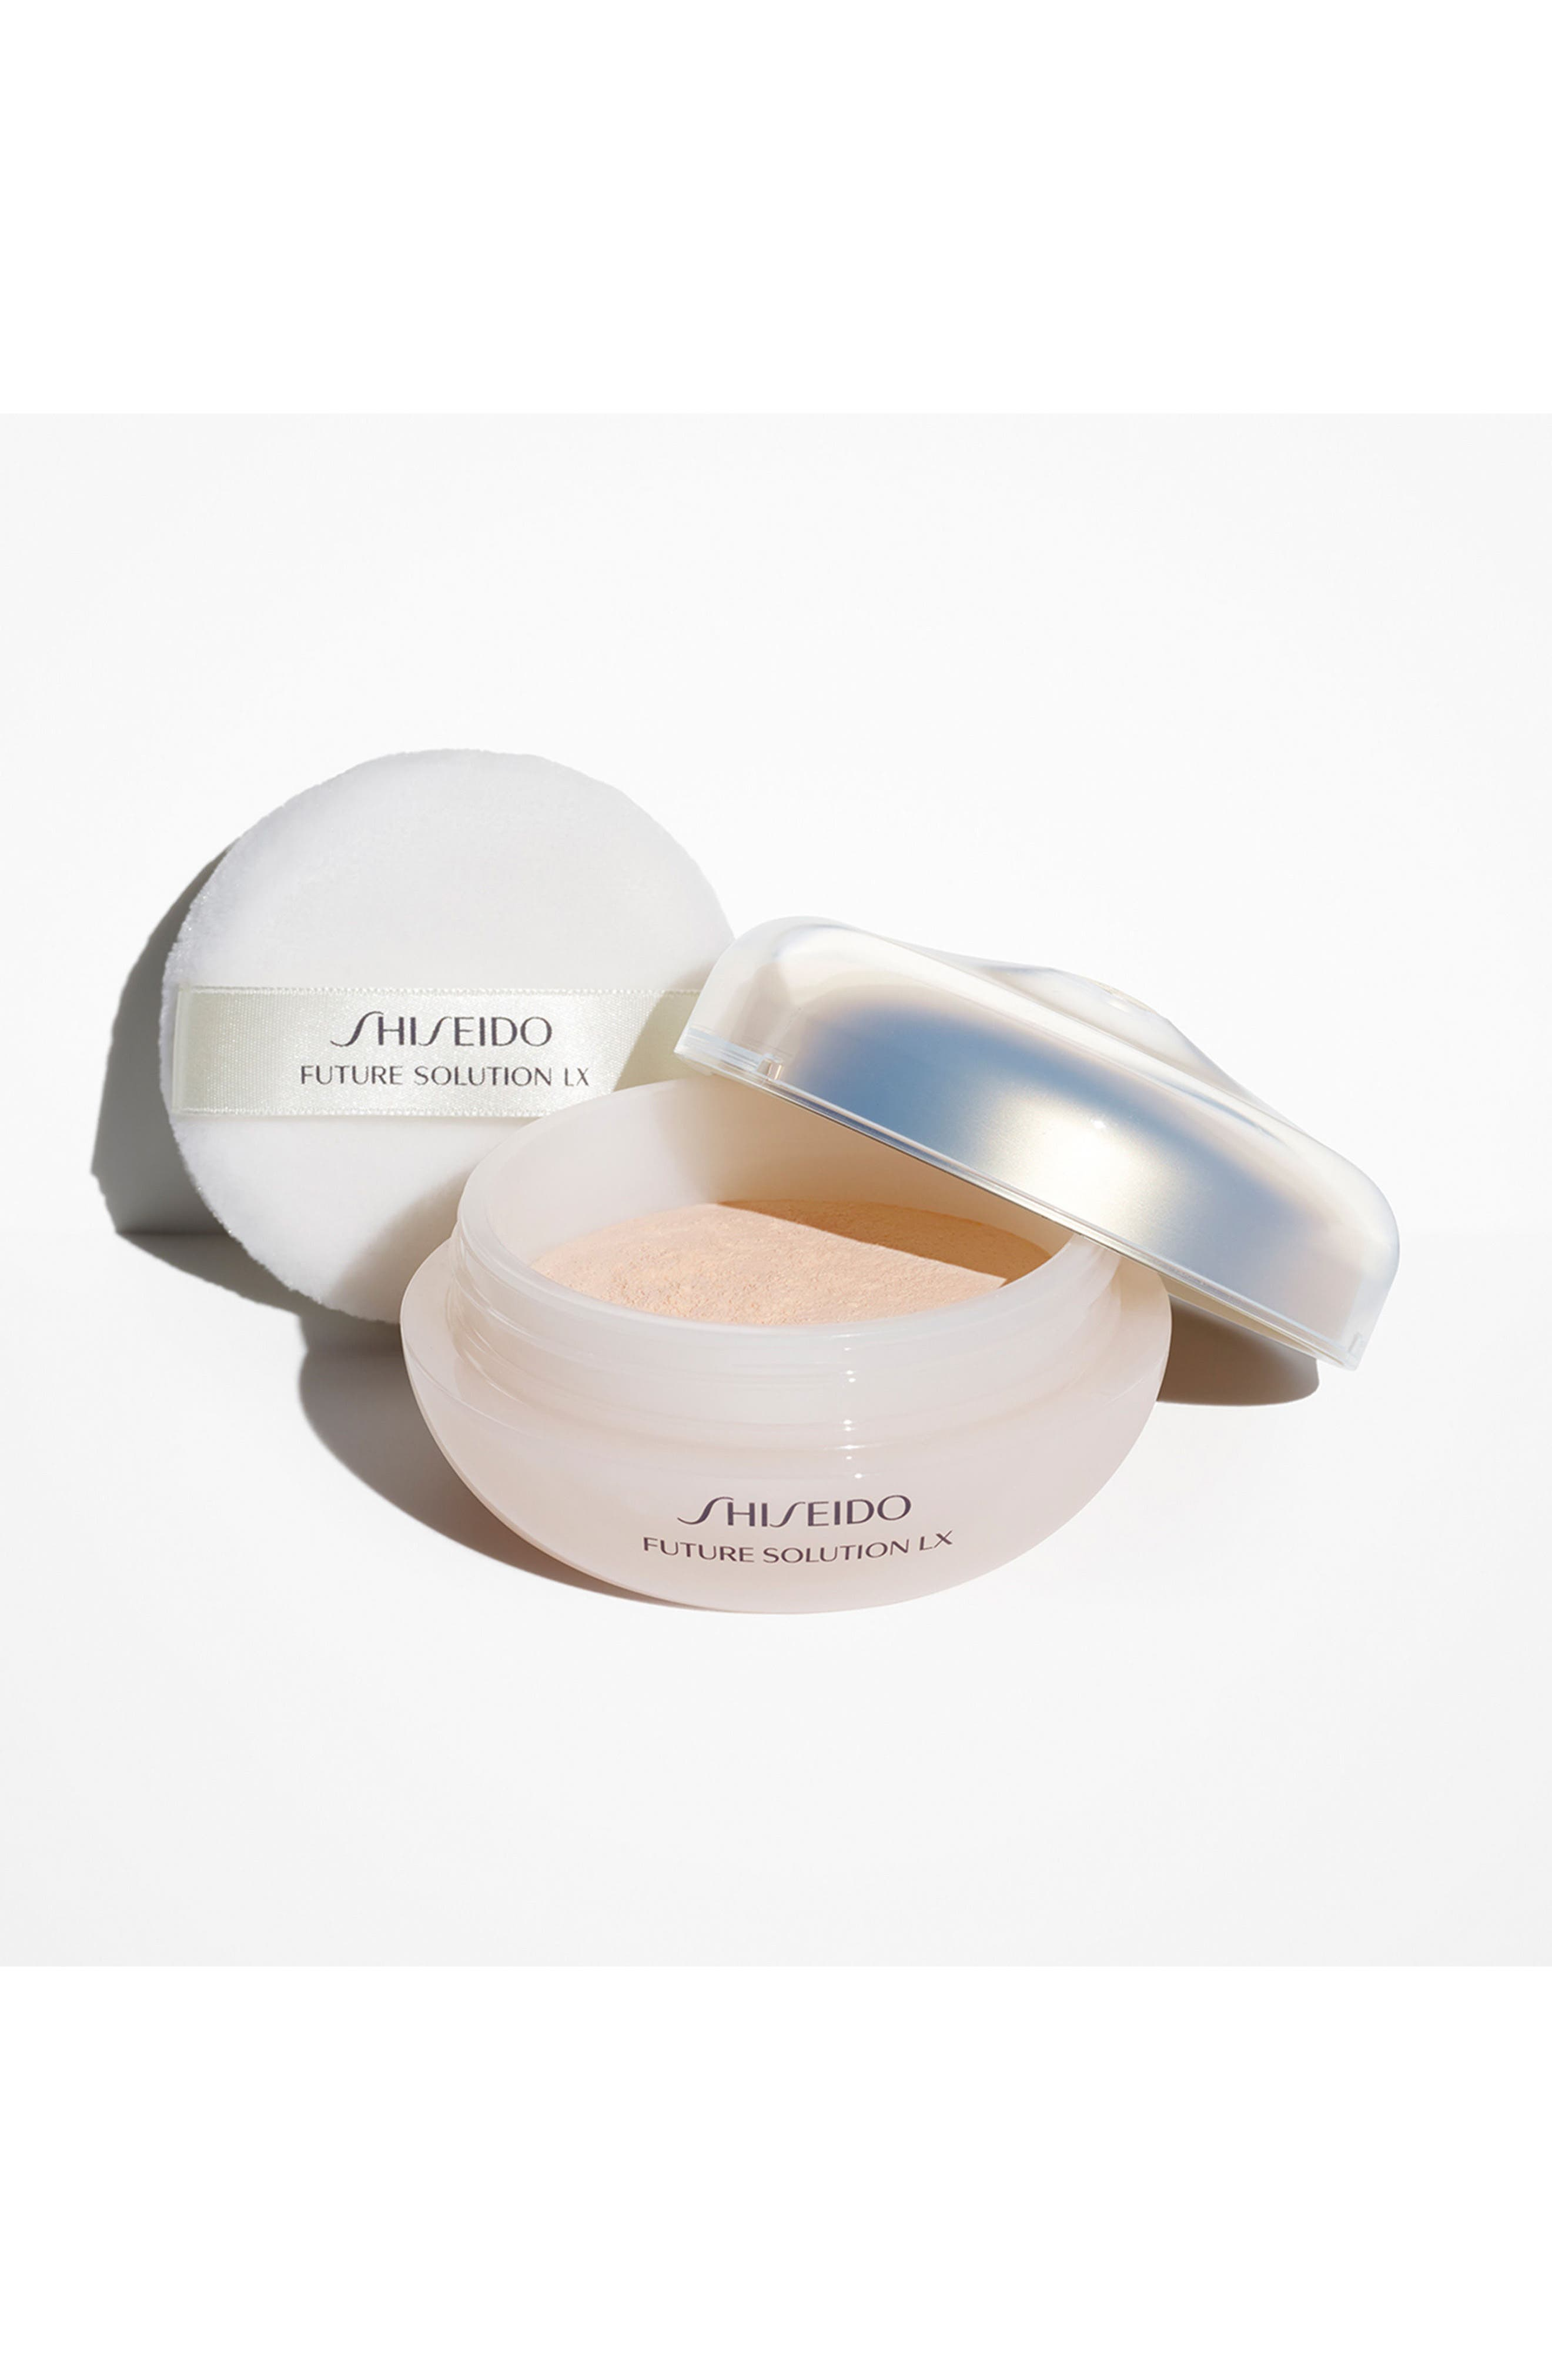 Future Solution LX Total Radiance Loose Powder,                             Alternate thumbnail 2, color,                             No Color